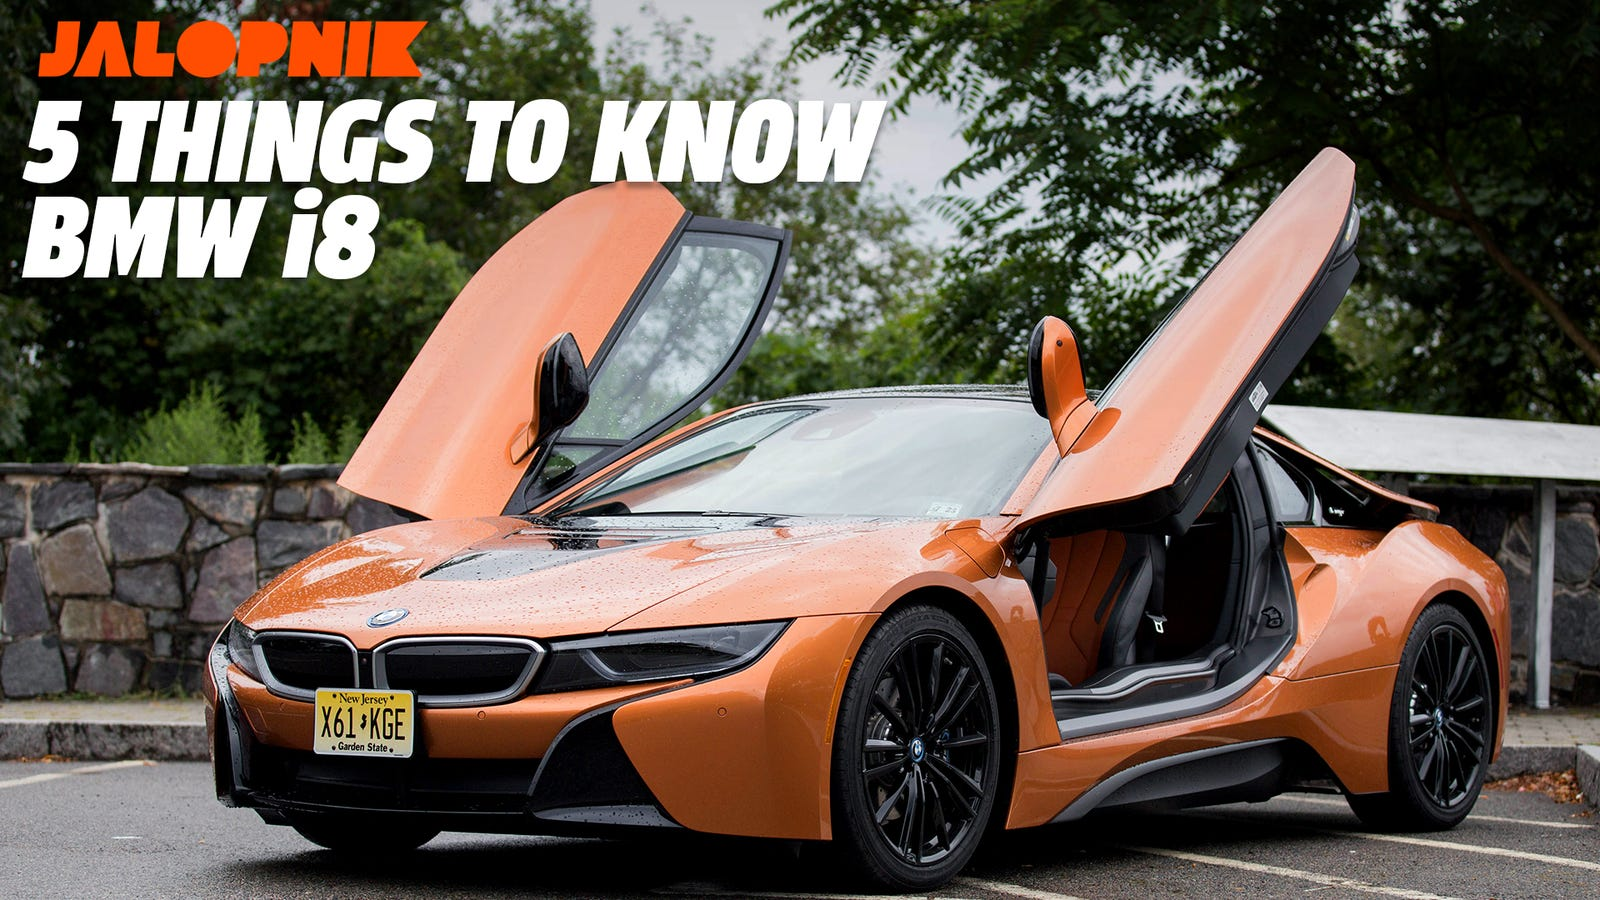 Five Things To Know About The Futuristic Bmw I8